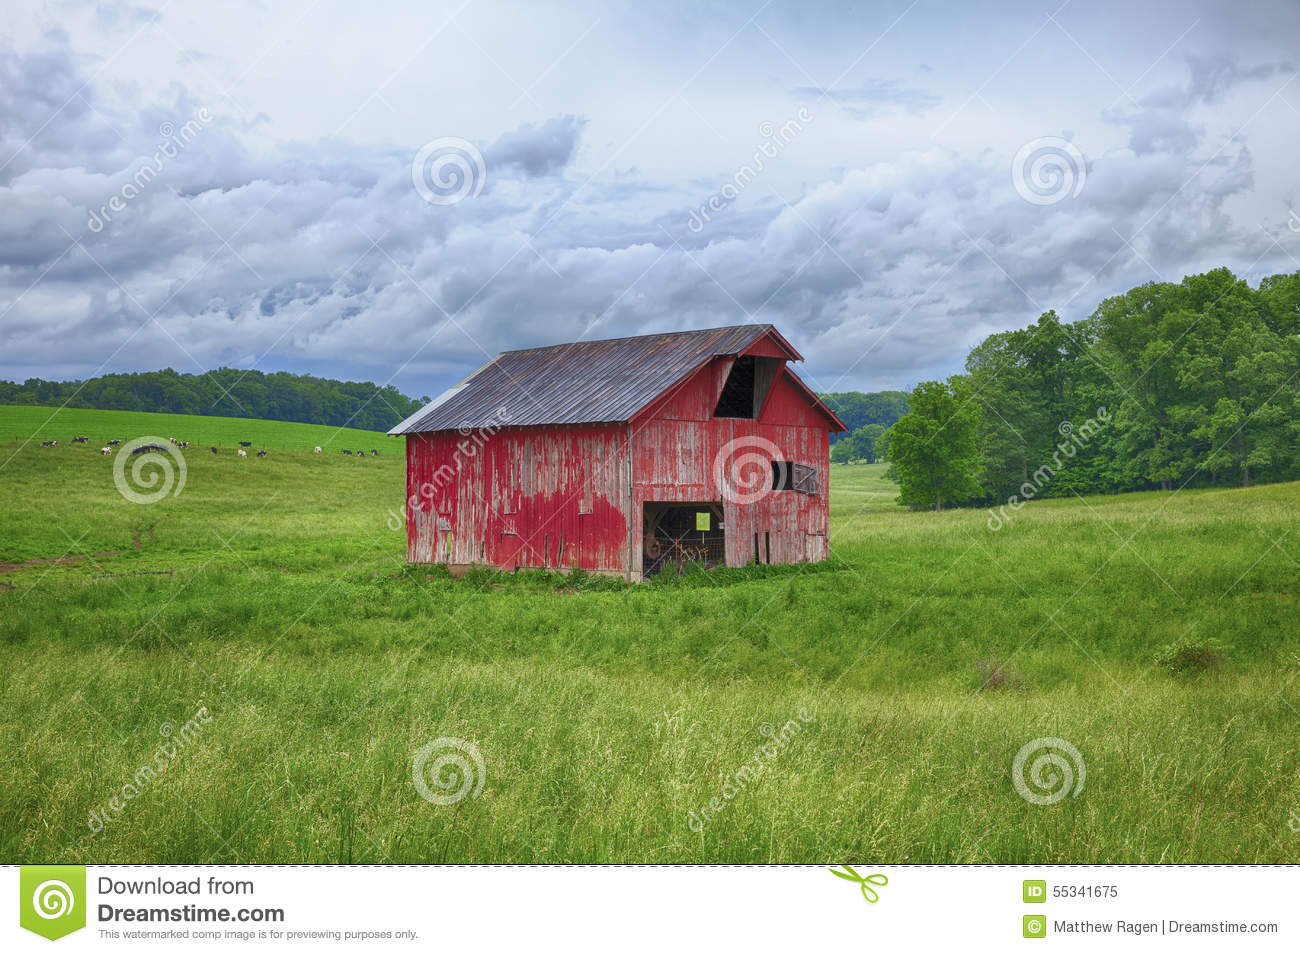 Cow on green pasture with red barn with grain silo royalty free stock - Royalty Free Stock Photo